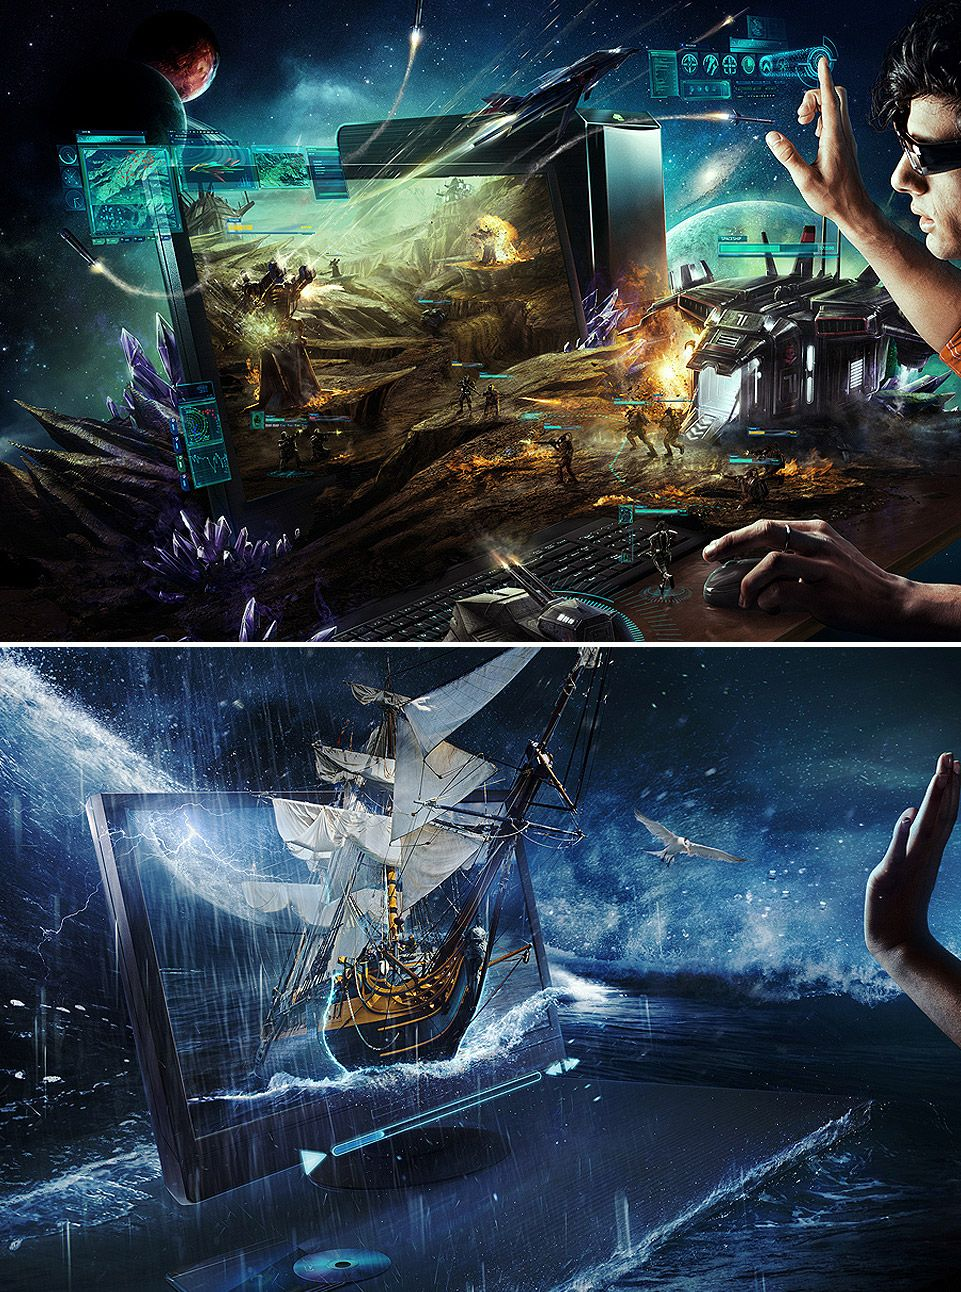 Pin by Vin Junior on Assignments Inspiration   Graphic ...